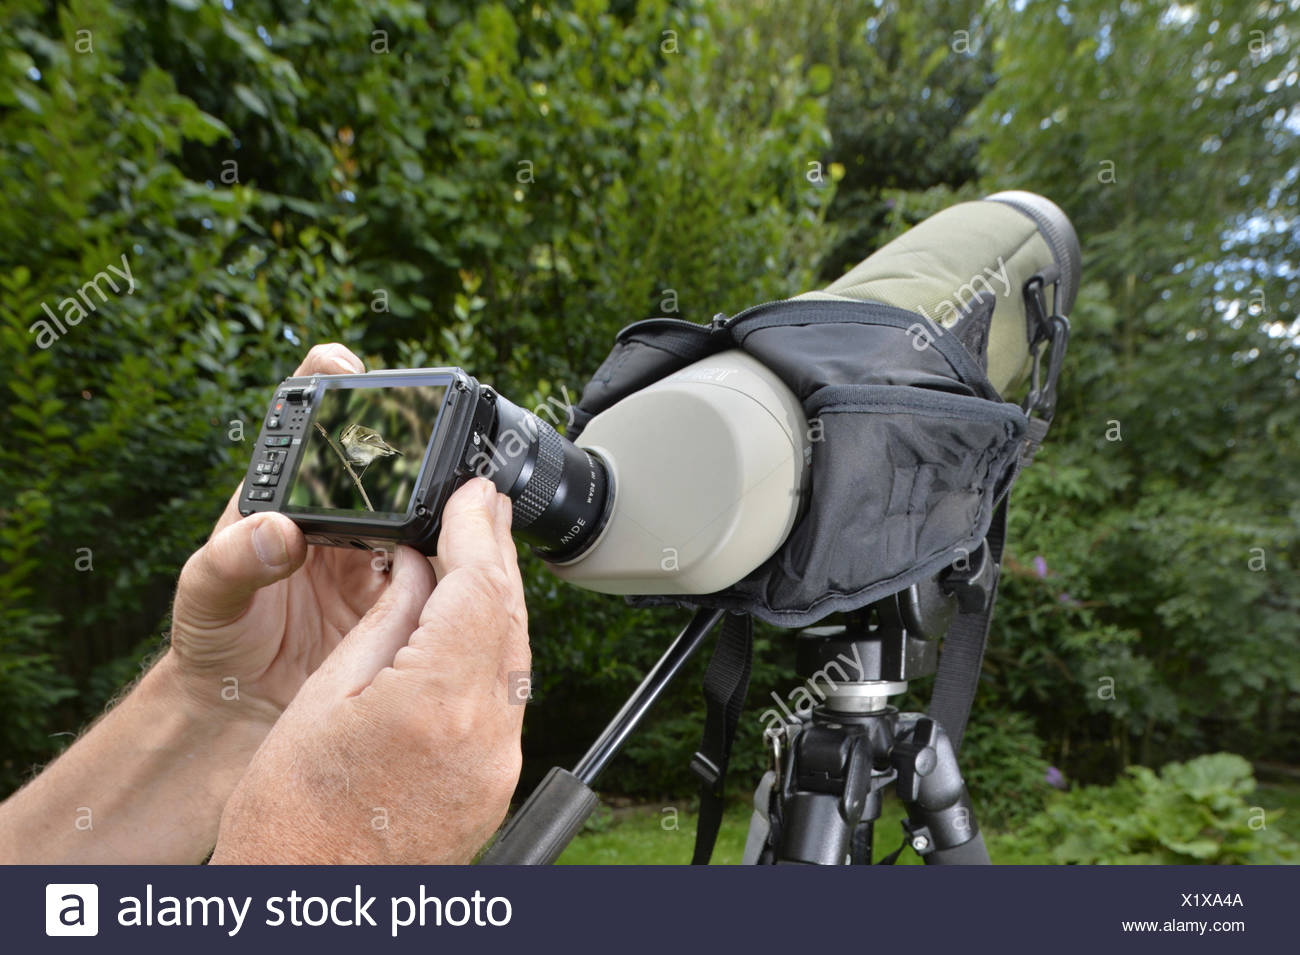 Digiscoping - taking a digital picture through a birder's scope - Stock Image